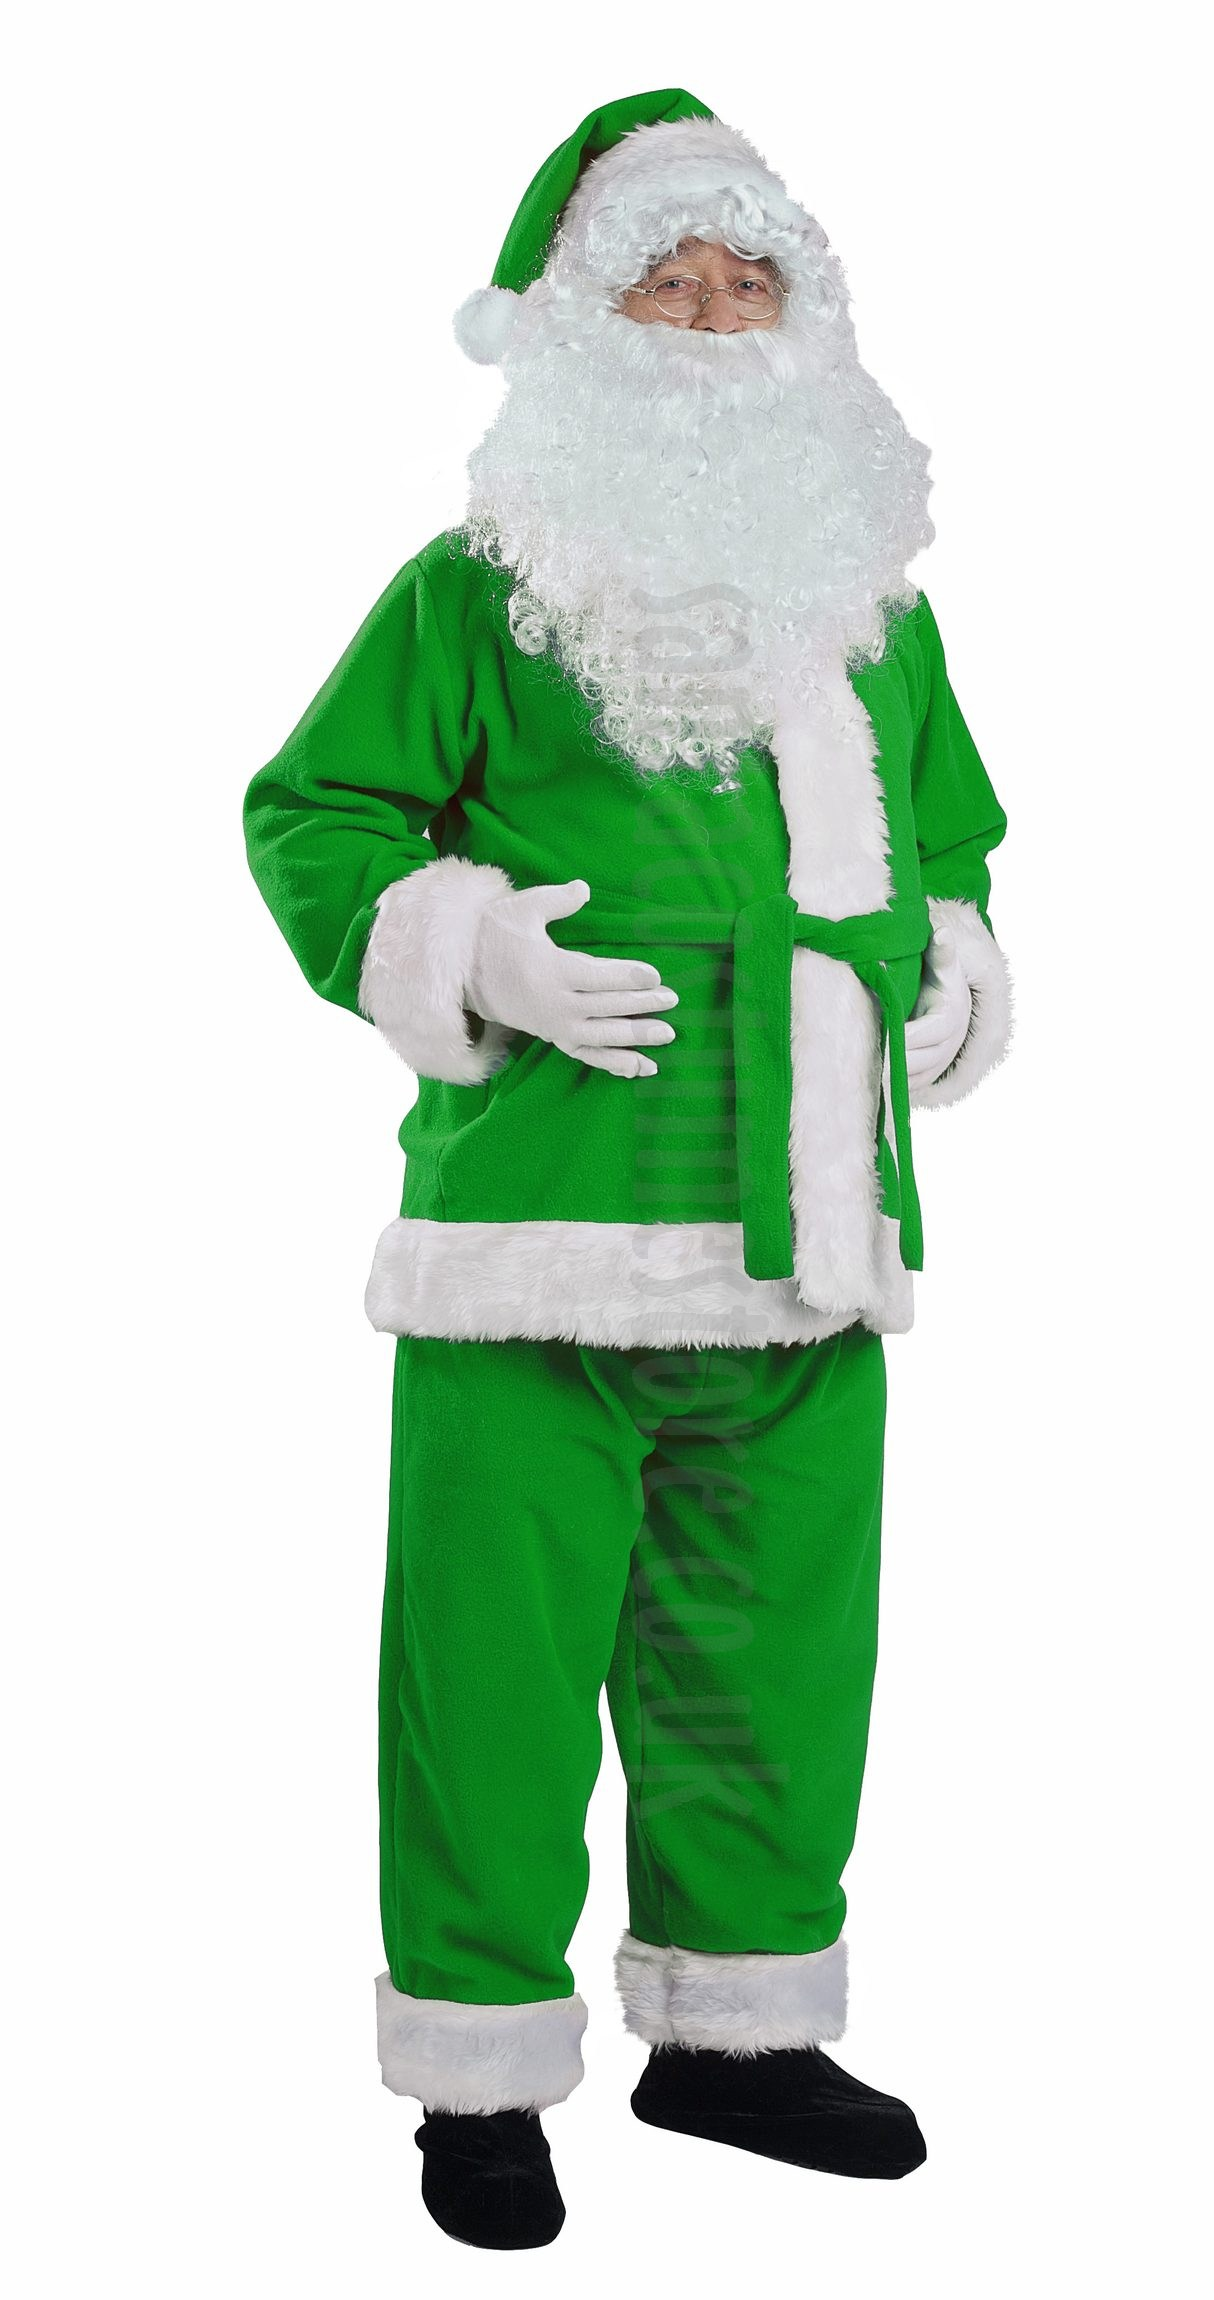 Santa in green coat